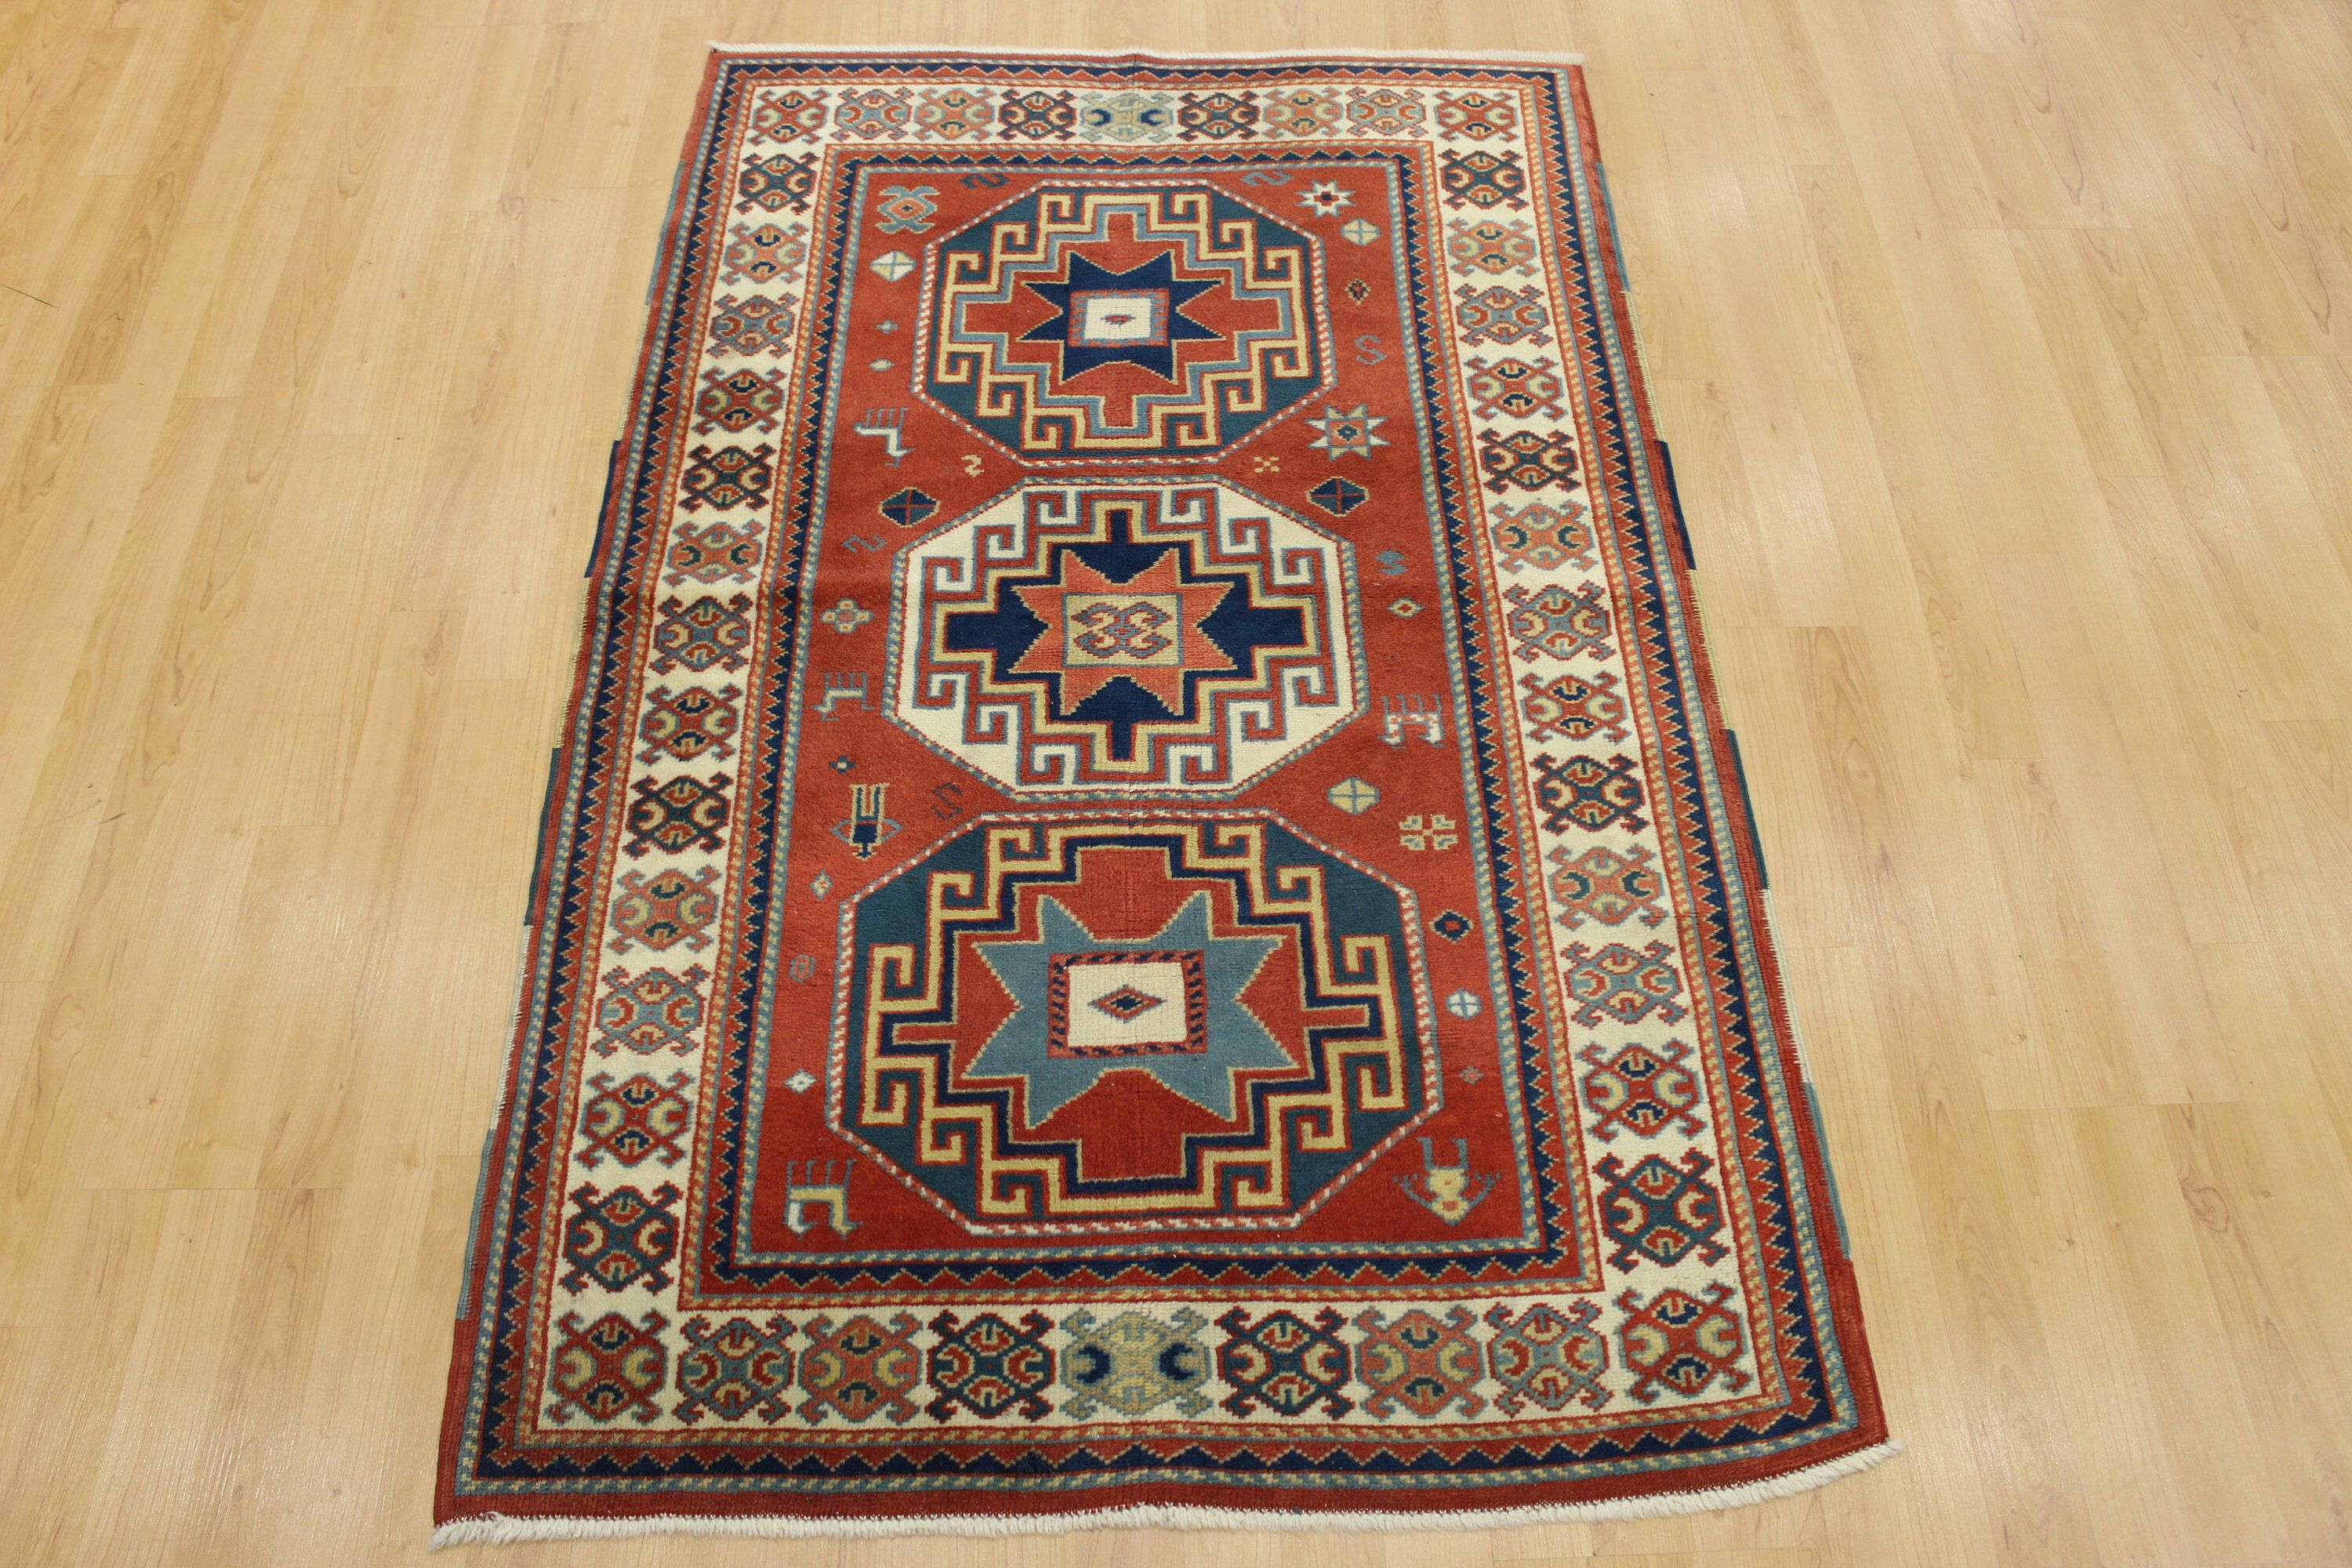 Excited To Share This Item From My Etsy Shop Vintage Carpet Red Blue Area Rug 3 X5 90x150 Cm Oriental Moroccan Style Rug Wool And Cotton Traditional Distre